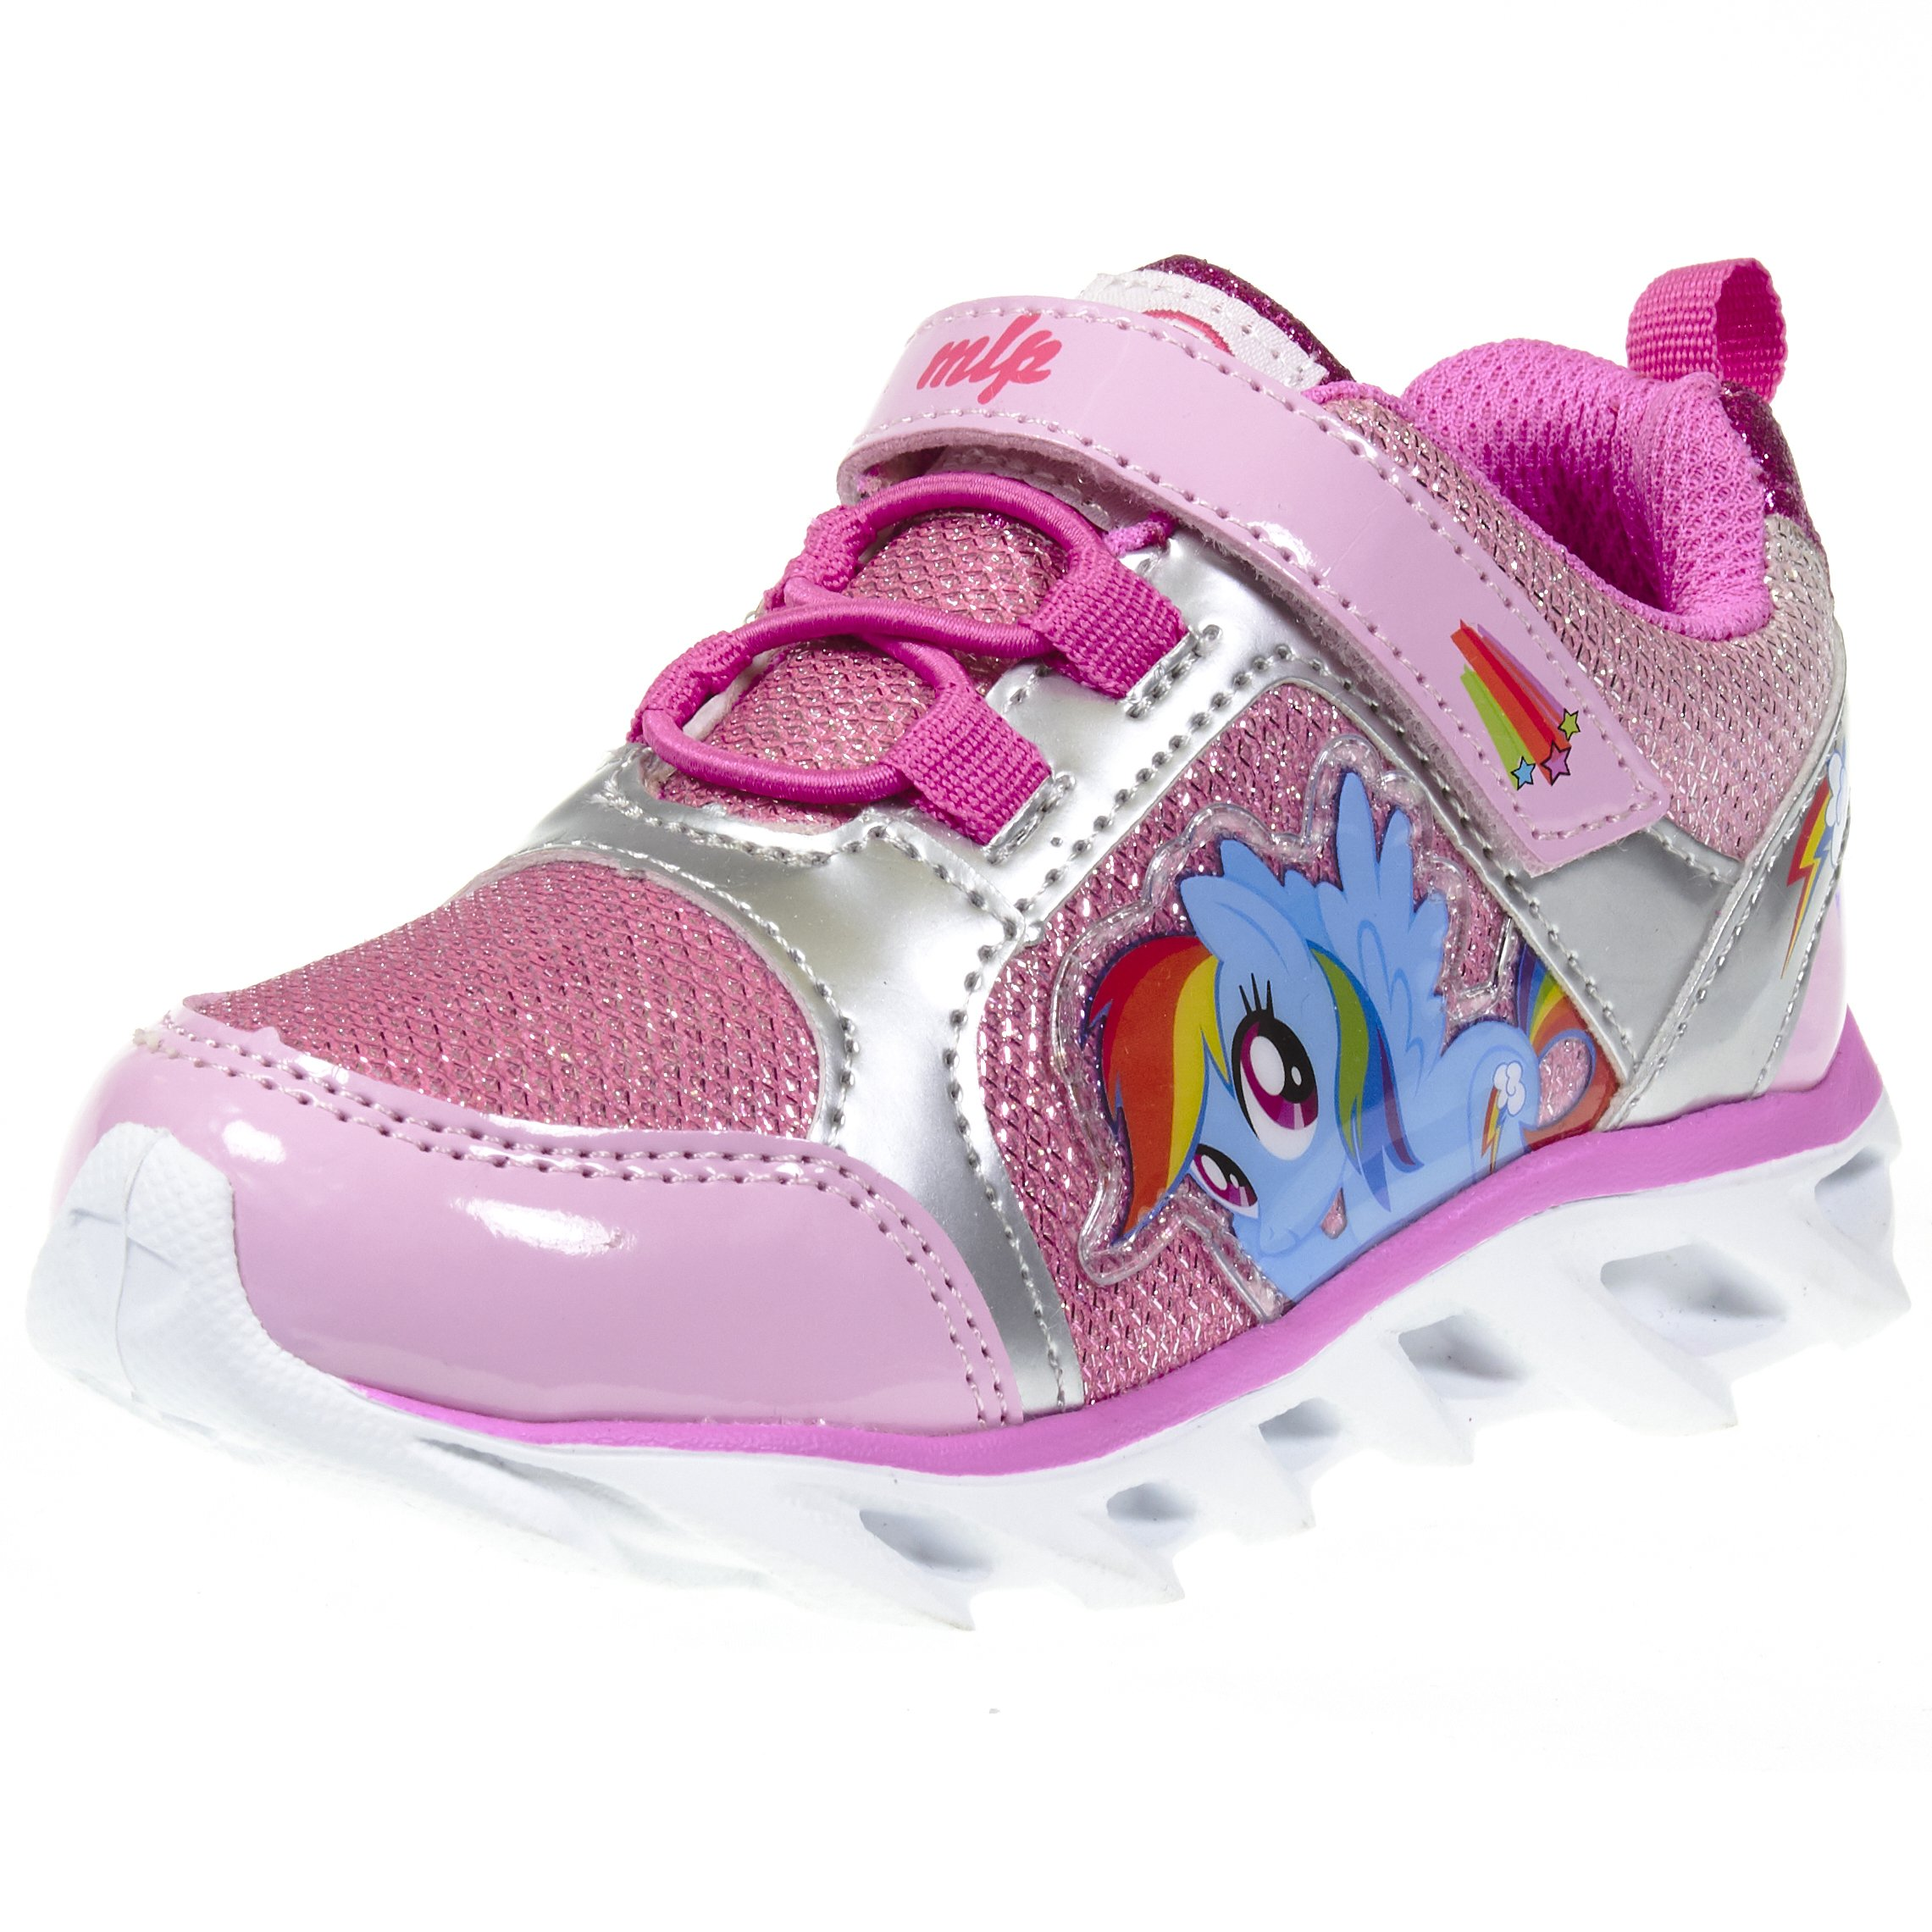 My Little Pony Light up Rainbow Dash Pink Sneakers, 8 US Toddler